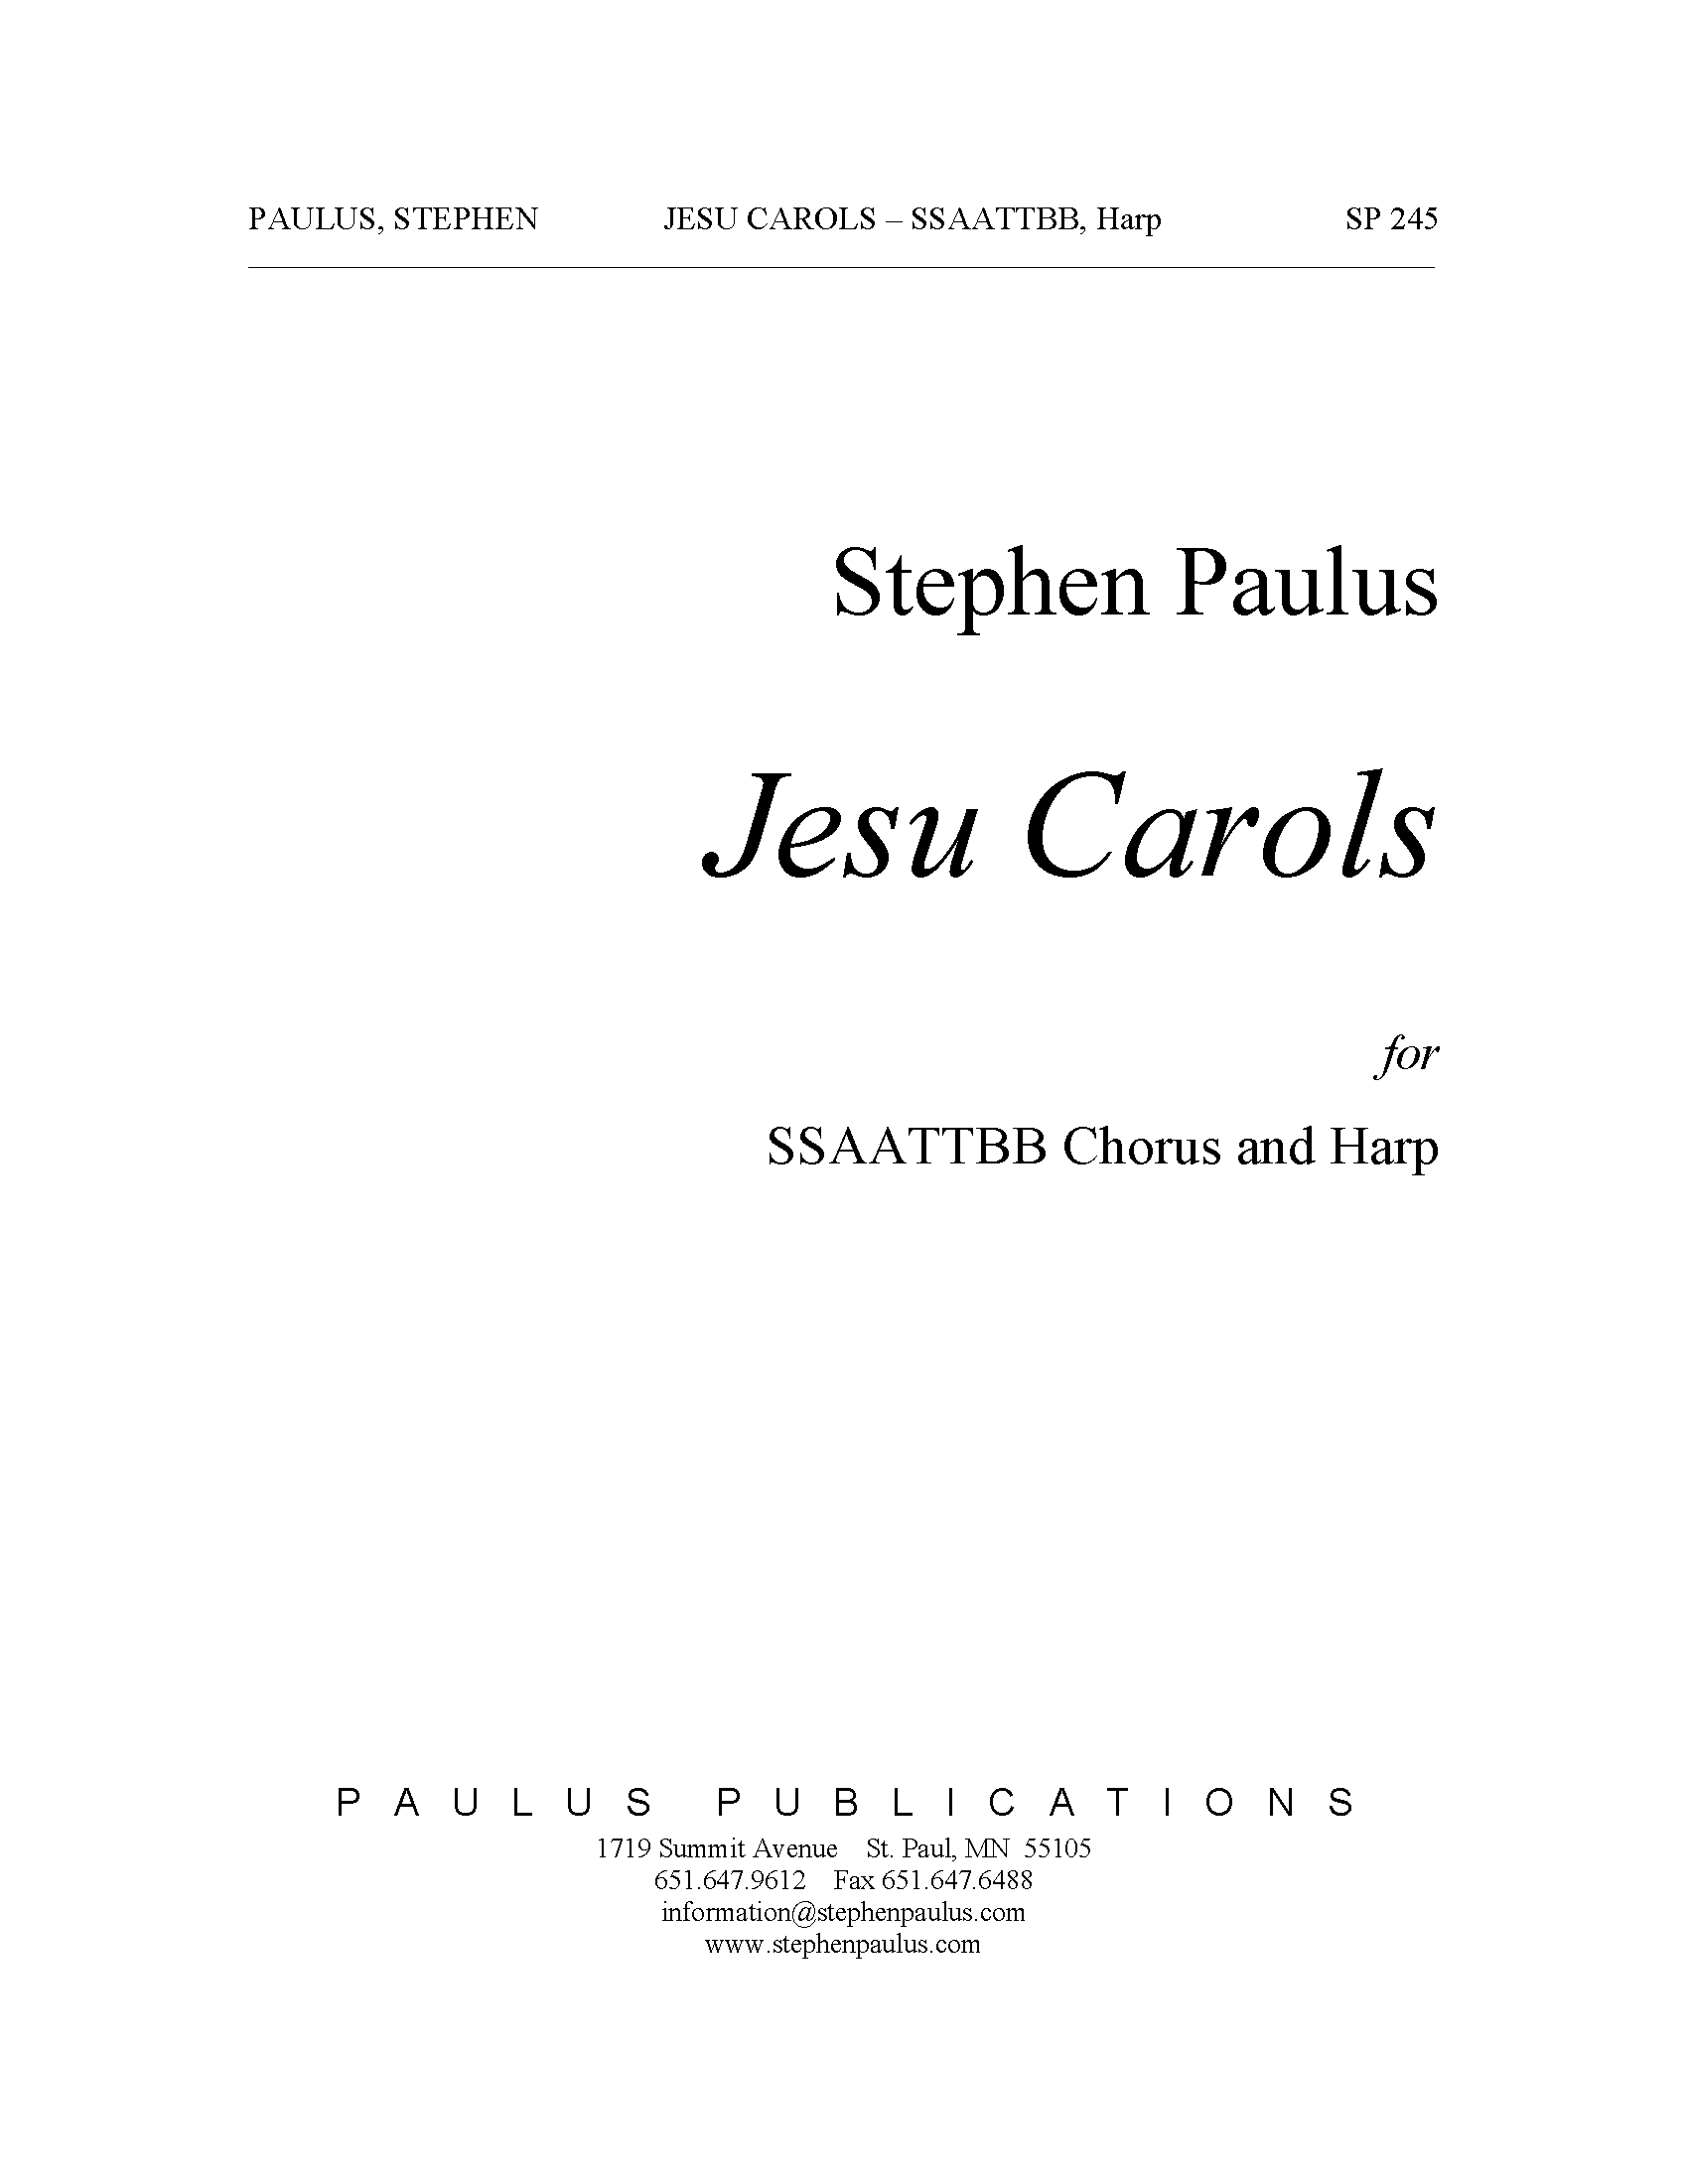 Jesu Carols for SSAATTBB Chorus & Harp